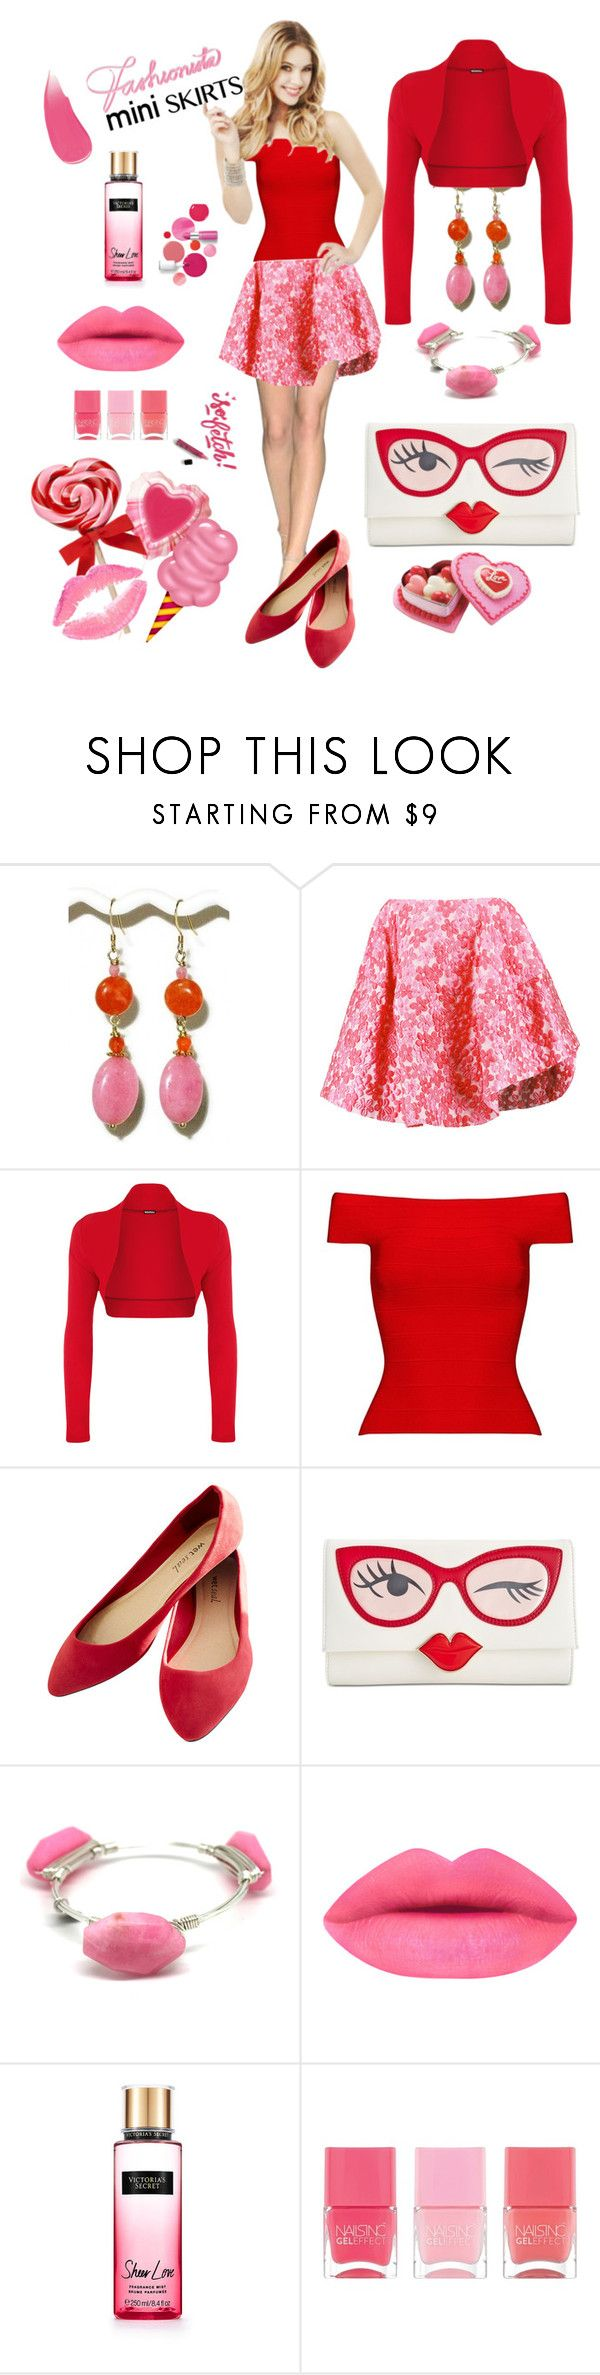 """""""#miniskirt"""" by manueladimauro ❤ liked on Polyvore featuring Simone Rocha, WearAll, Posh Girl, Wet Seal, Kate Spade, Black & Sigi, Victoria's Secret, Nails Inc., Burberry and Clinique"""